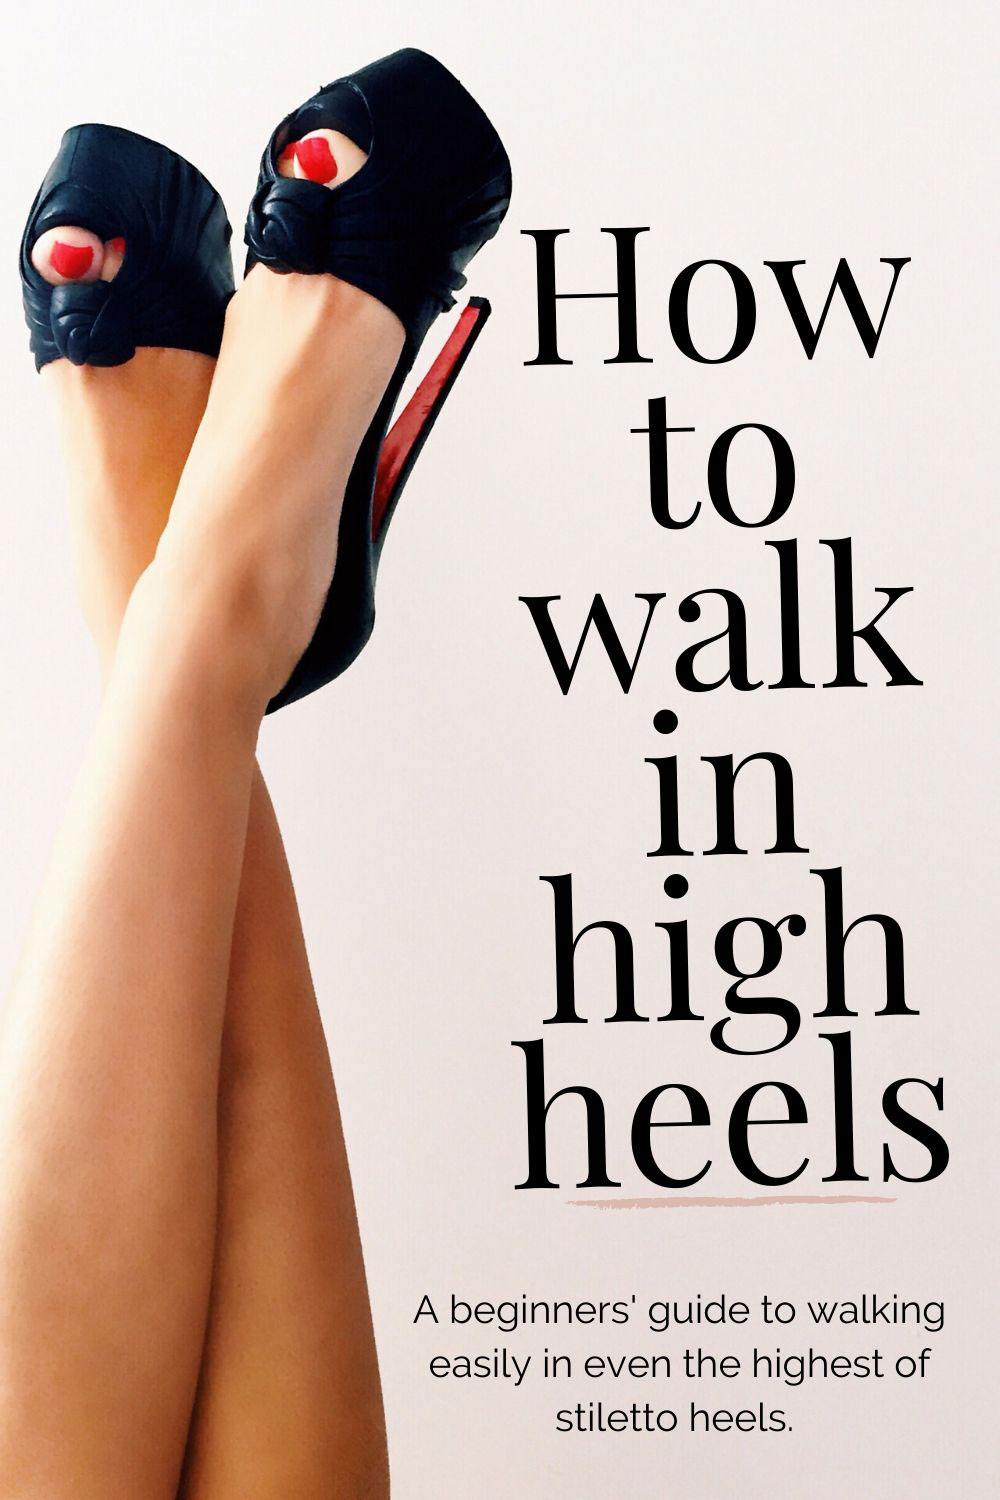 How to walk in high heels for beginners: a guide to walking in stilettos, without pain, and without falling over